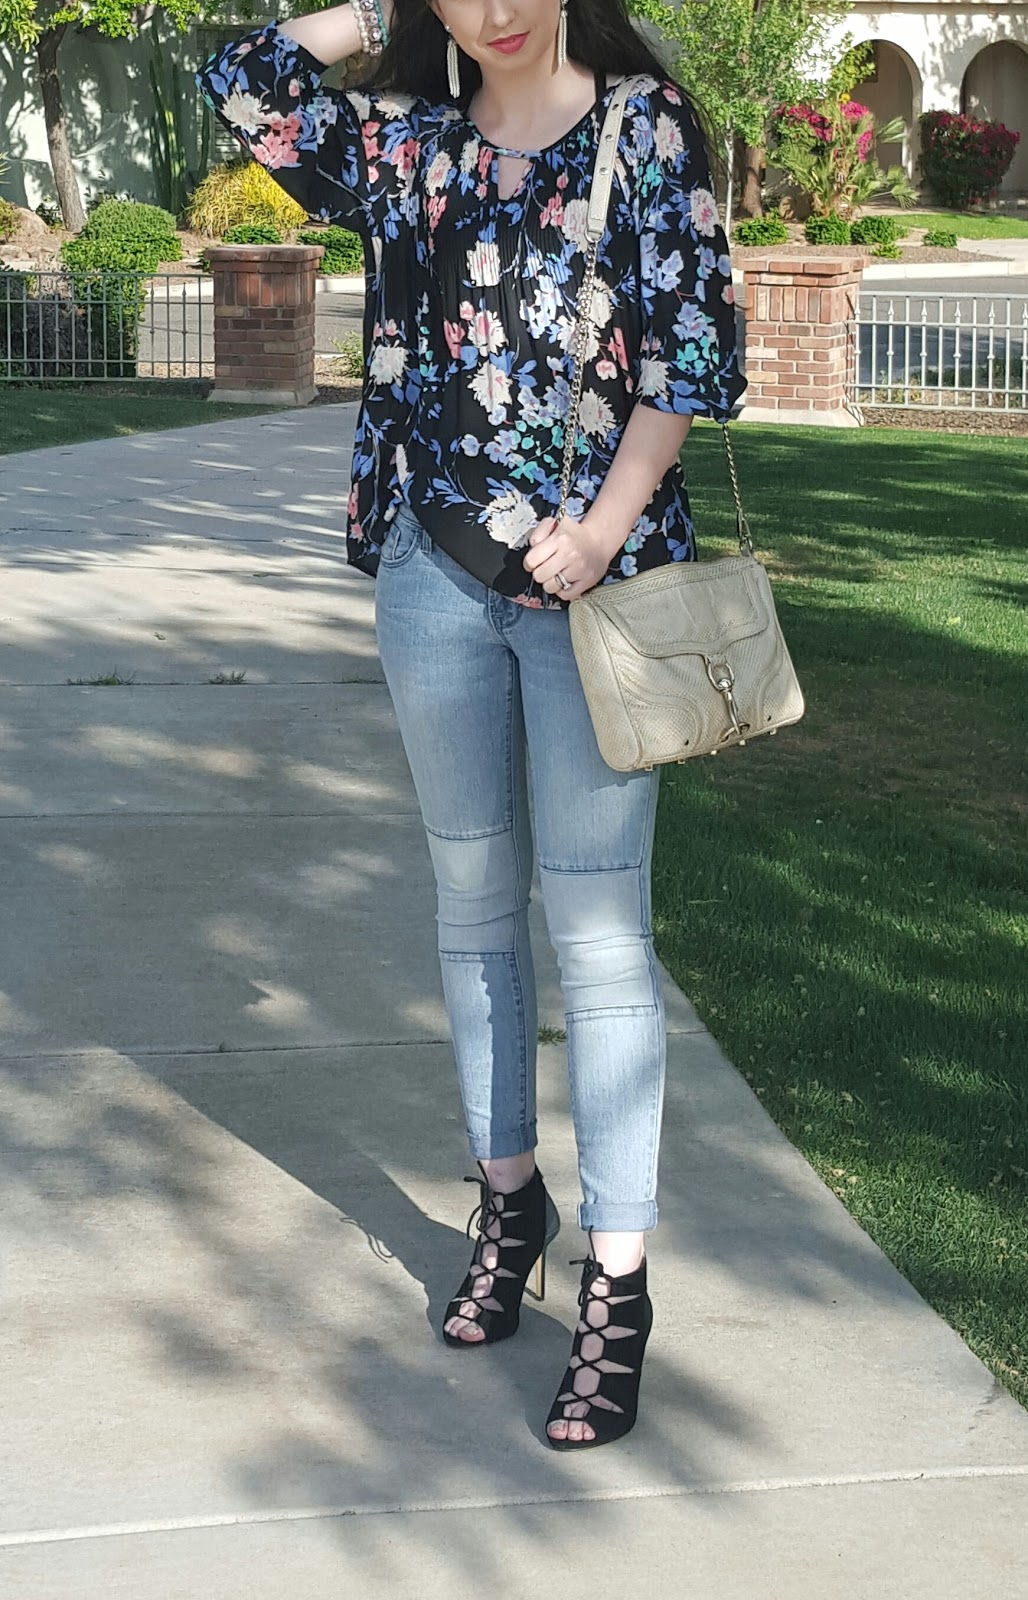 Spring outfit idea- floral flowy top, lace up heels, and tassel earrings